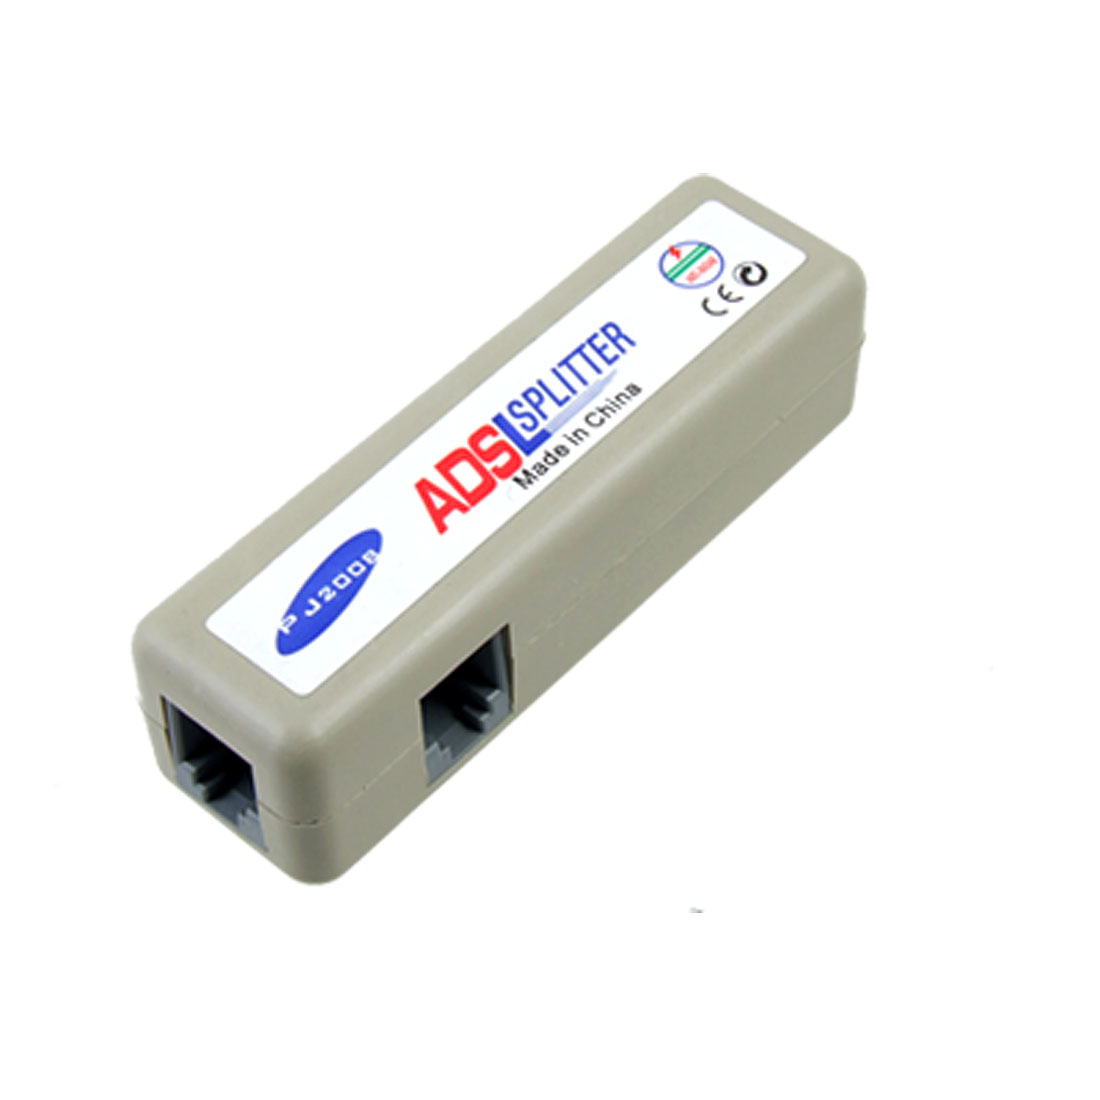 ADSL RJ11 Modem Telephone Line Adapter Splitter Gray